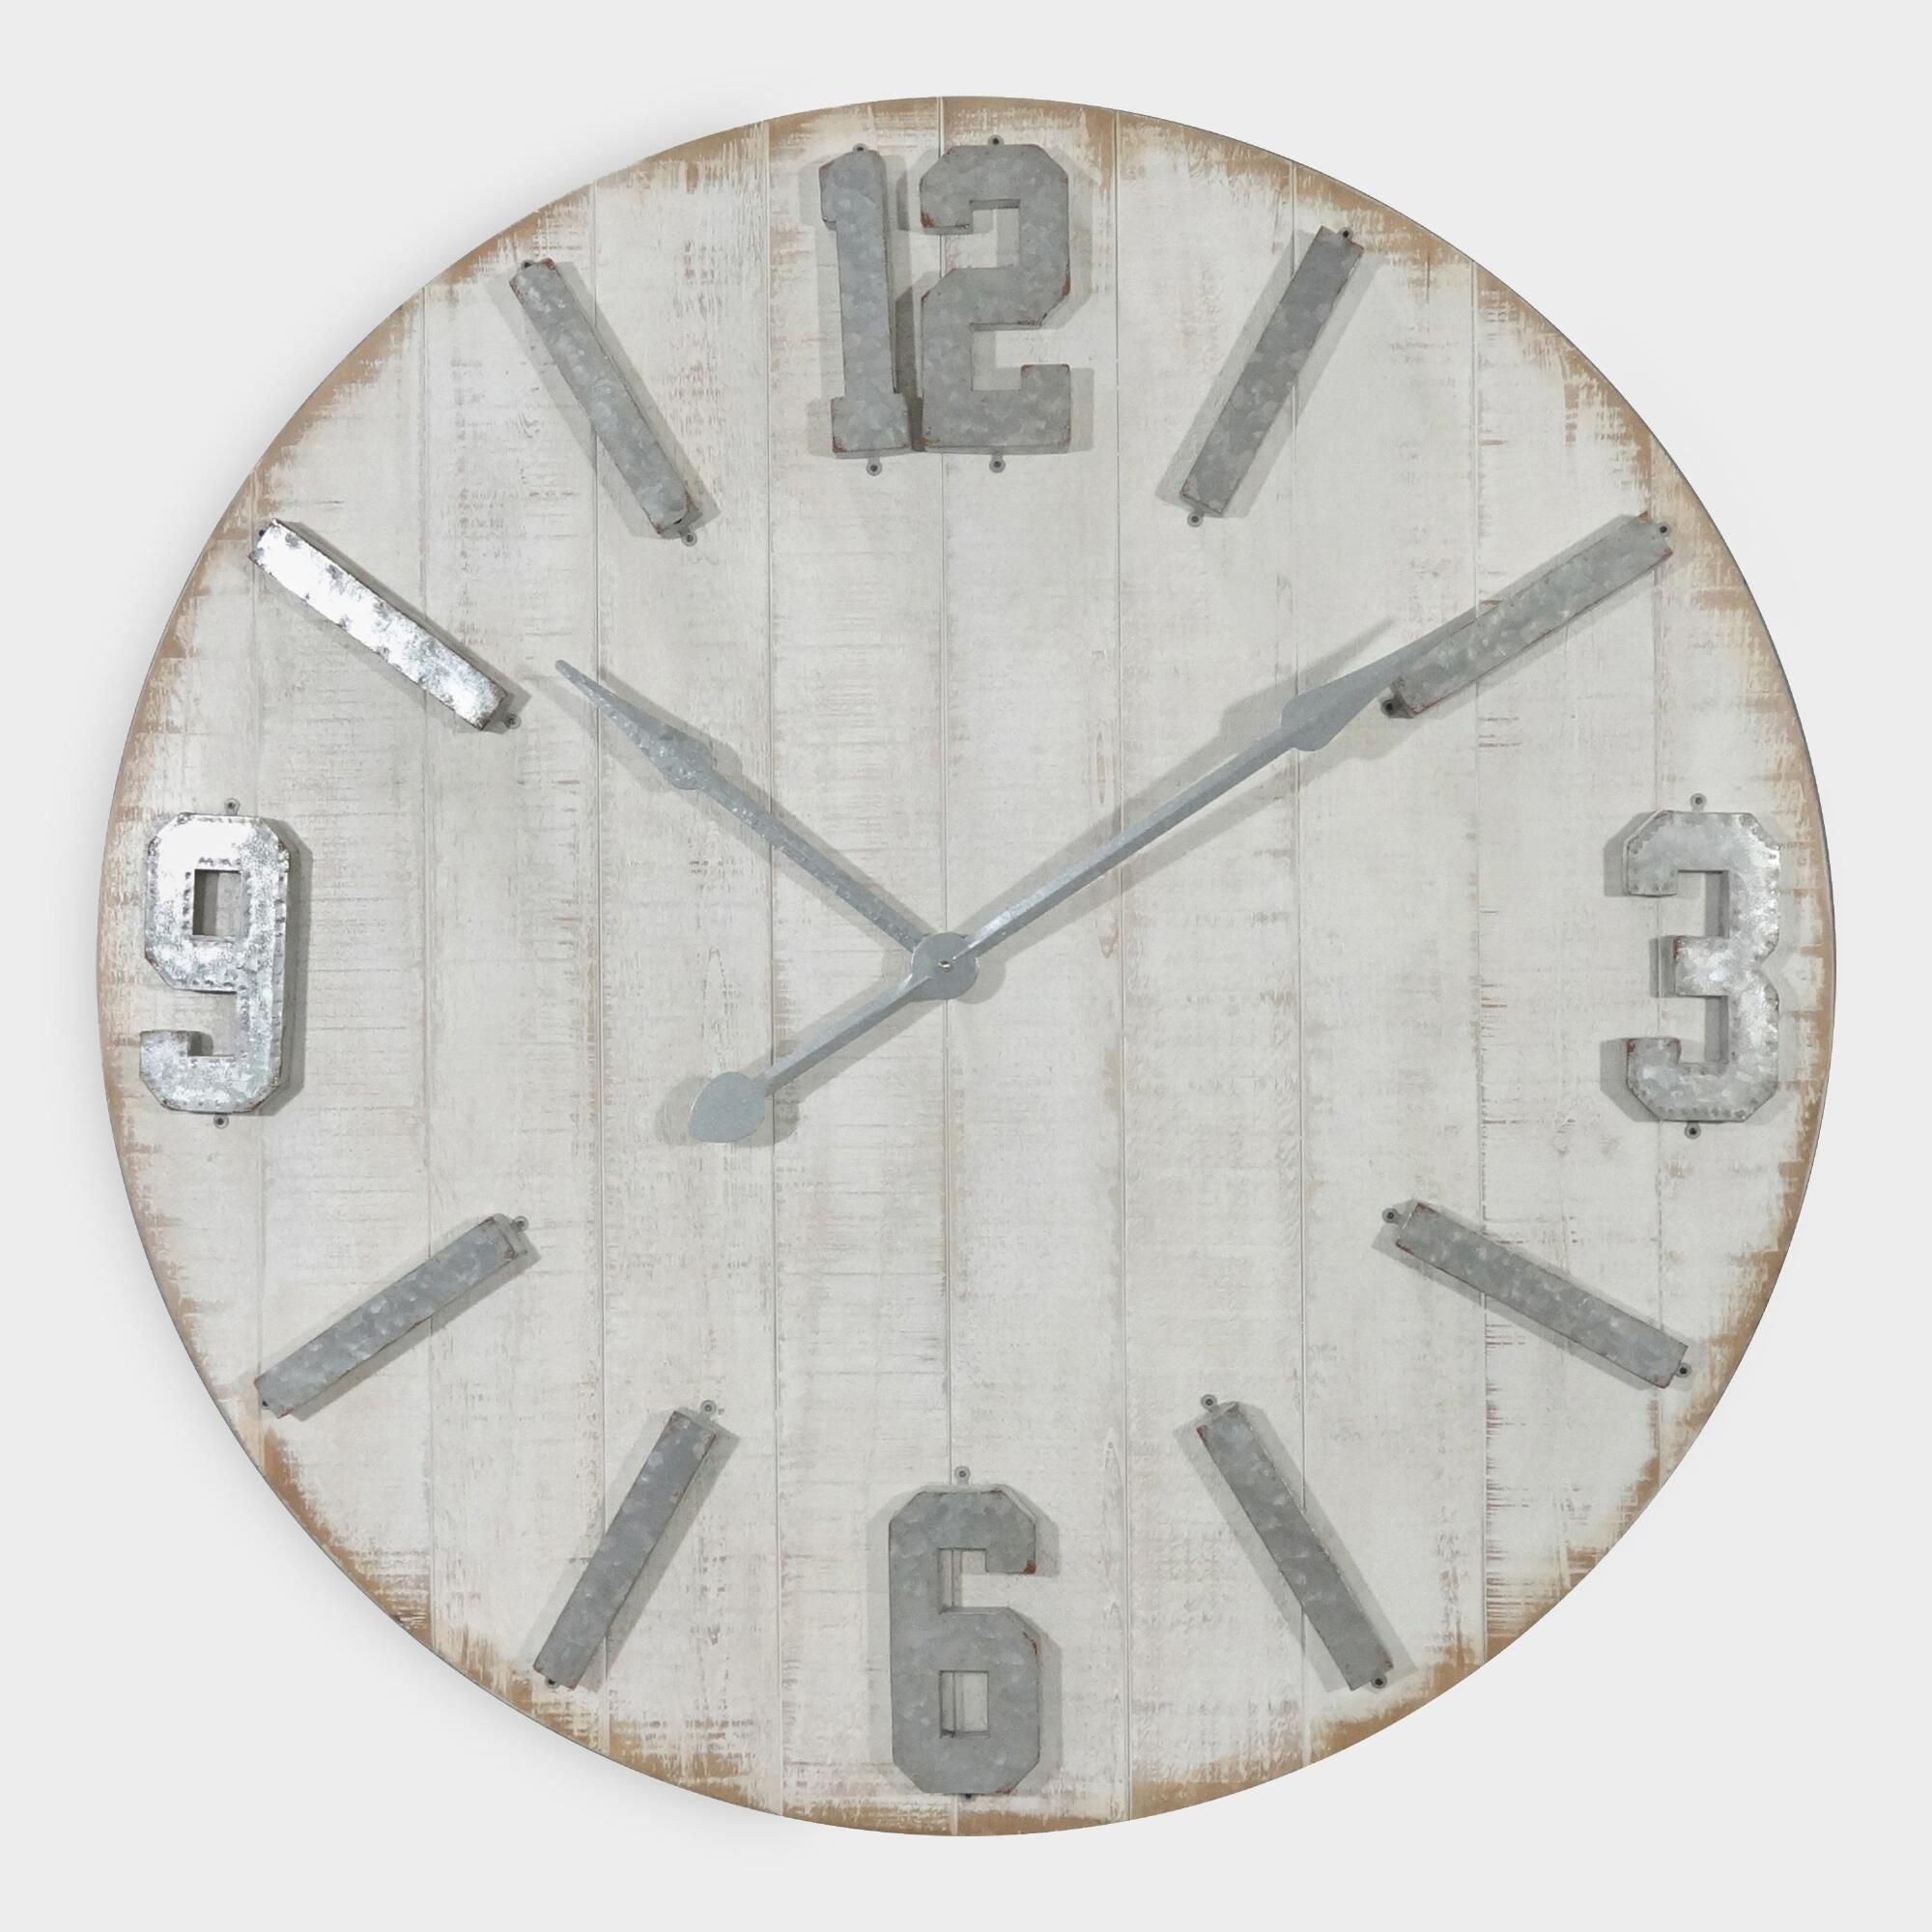 Rustic whitewashed wood wall clock by world market in